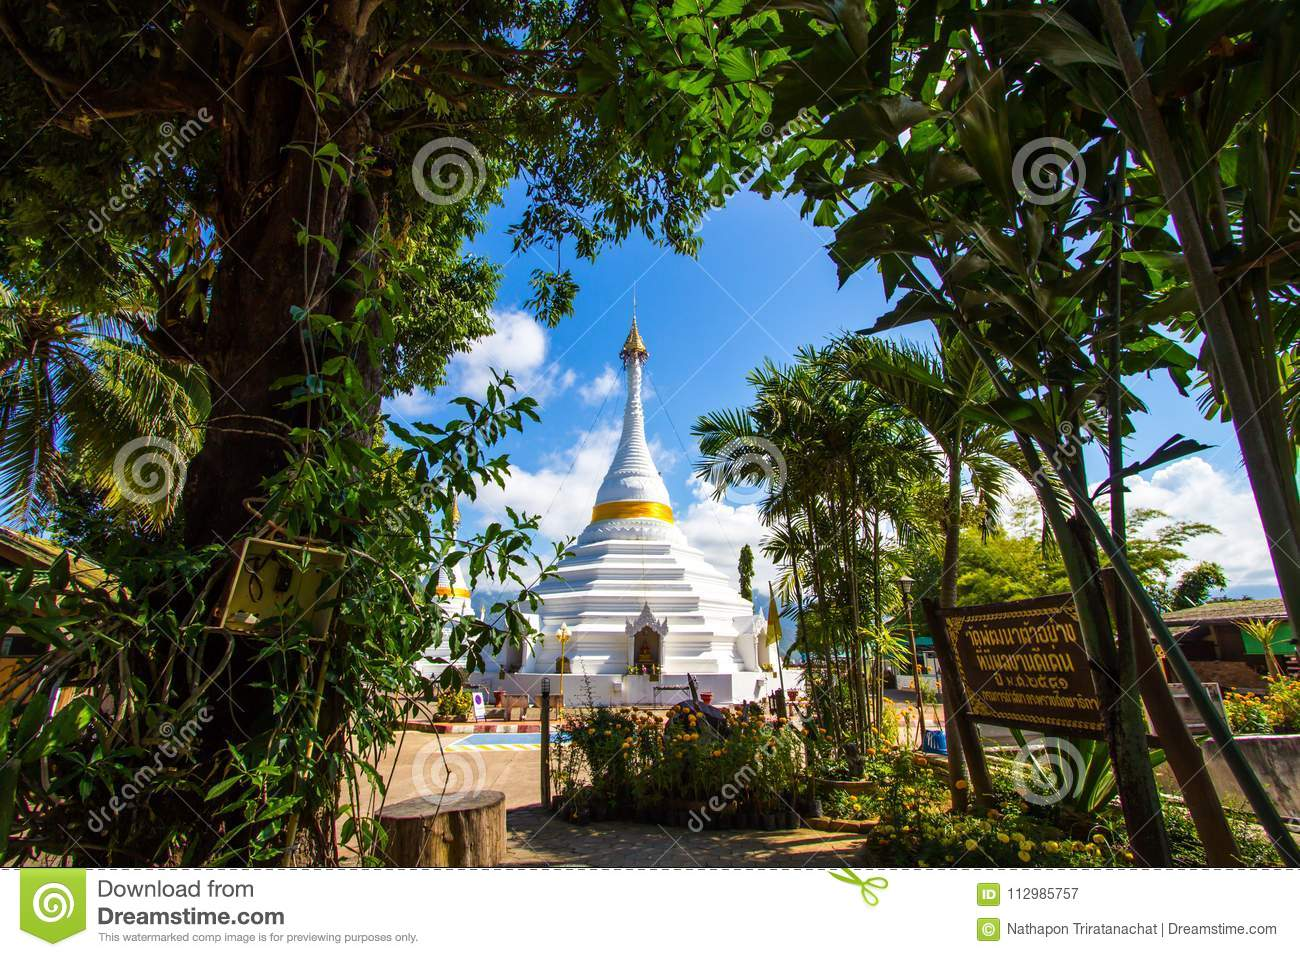 Mae Hong Son province,Northern Thailand on November 19,2017: Burmese style white chedis with beautiful sky at Wat Phra That Doi Ko